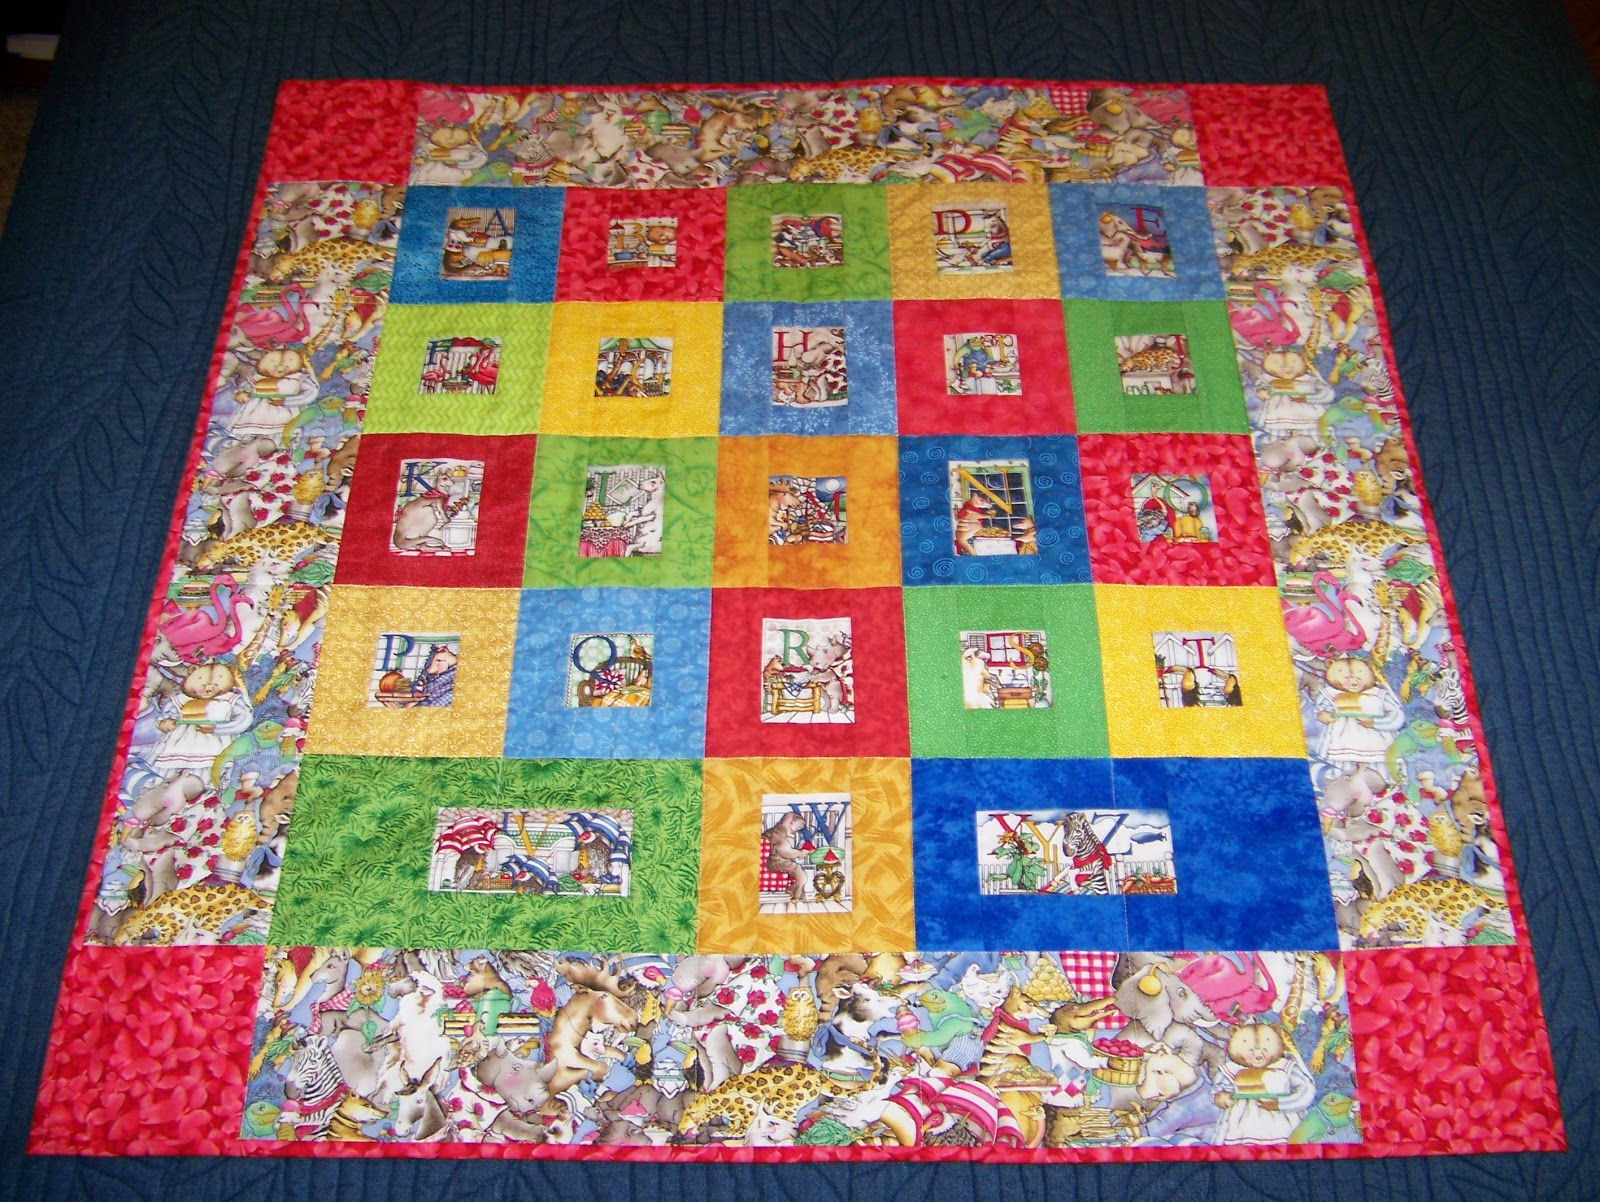 The Momoo Hungry Animal Alphabet Quilt